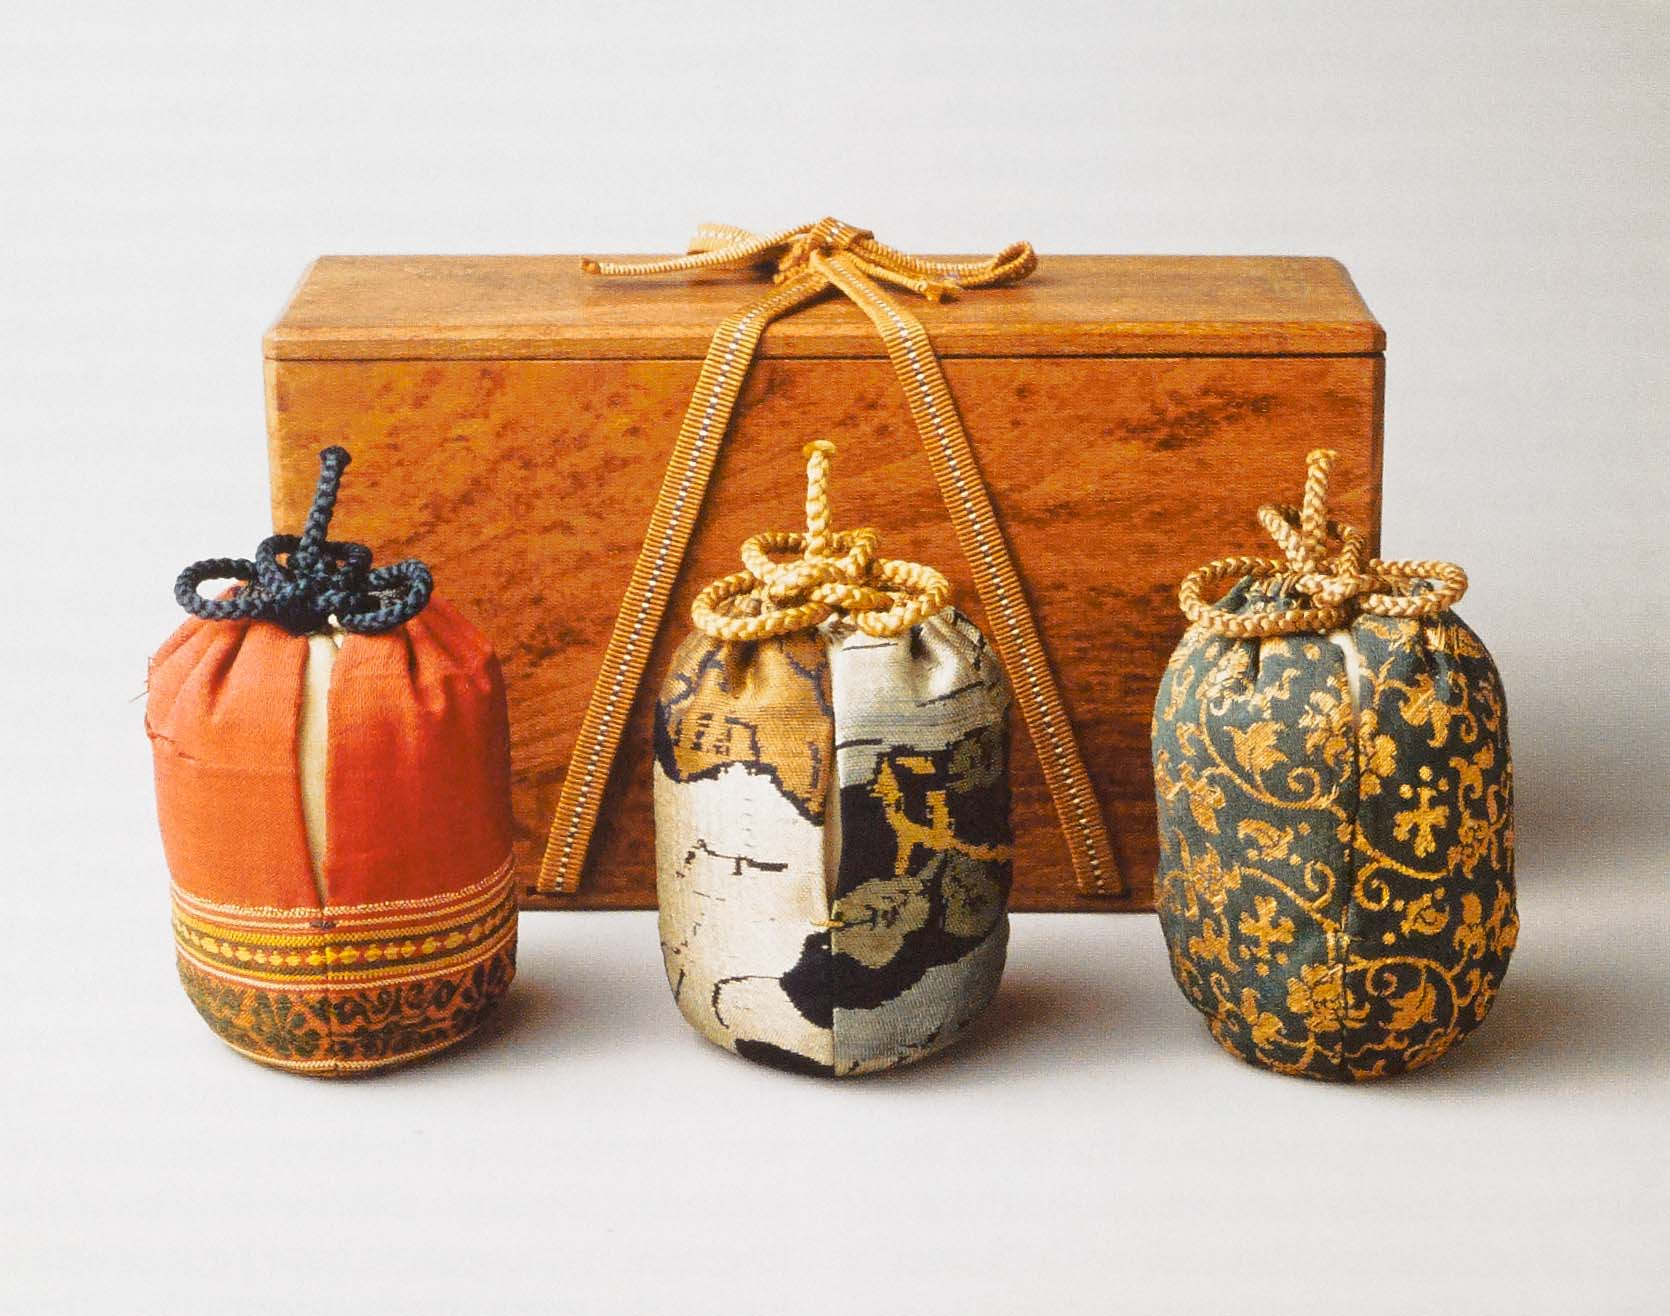 The three silk display bags with their box. Left: the informal bag of Satsuma Canton (Indian silk); center: the formal bag of Kiyomizu fragment (Chinese silk); right: the intermediate bag of gold brocade (Chinese silk).